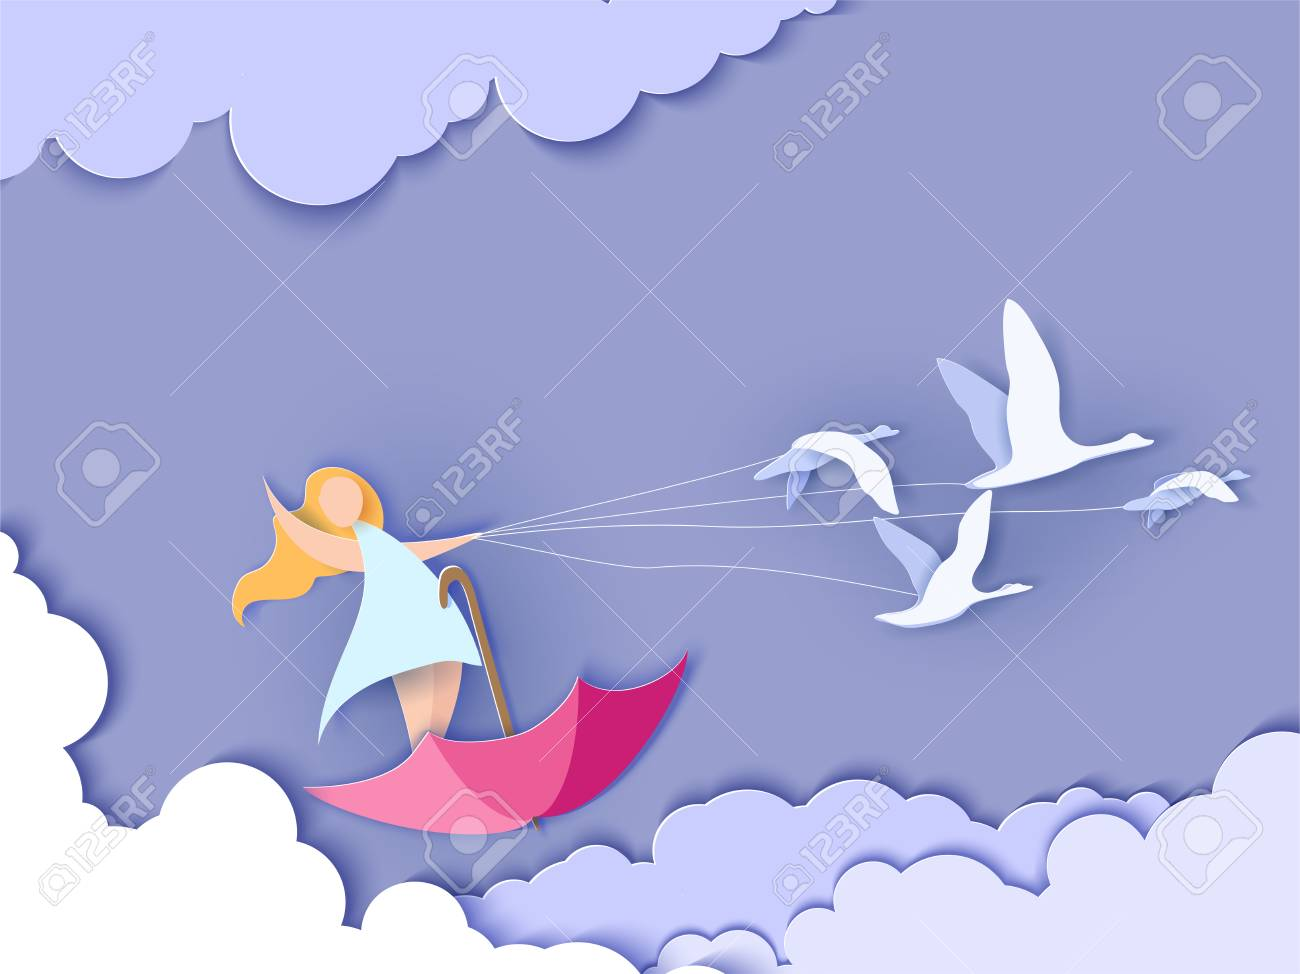 Valentines day card. Abstract background with happy girl flying on umbrella with swans and blue sky. Vector illustration. Paper cut and craft style. - 94153426